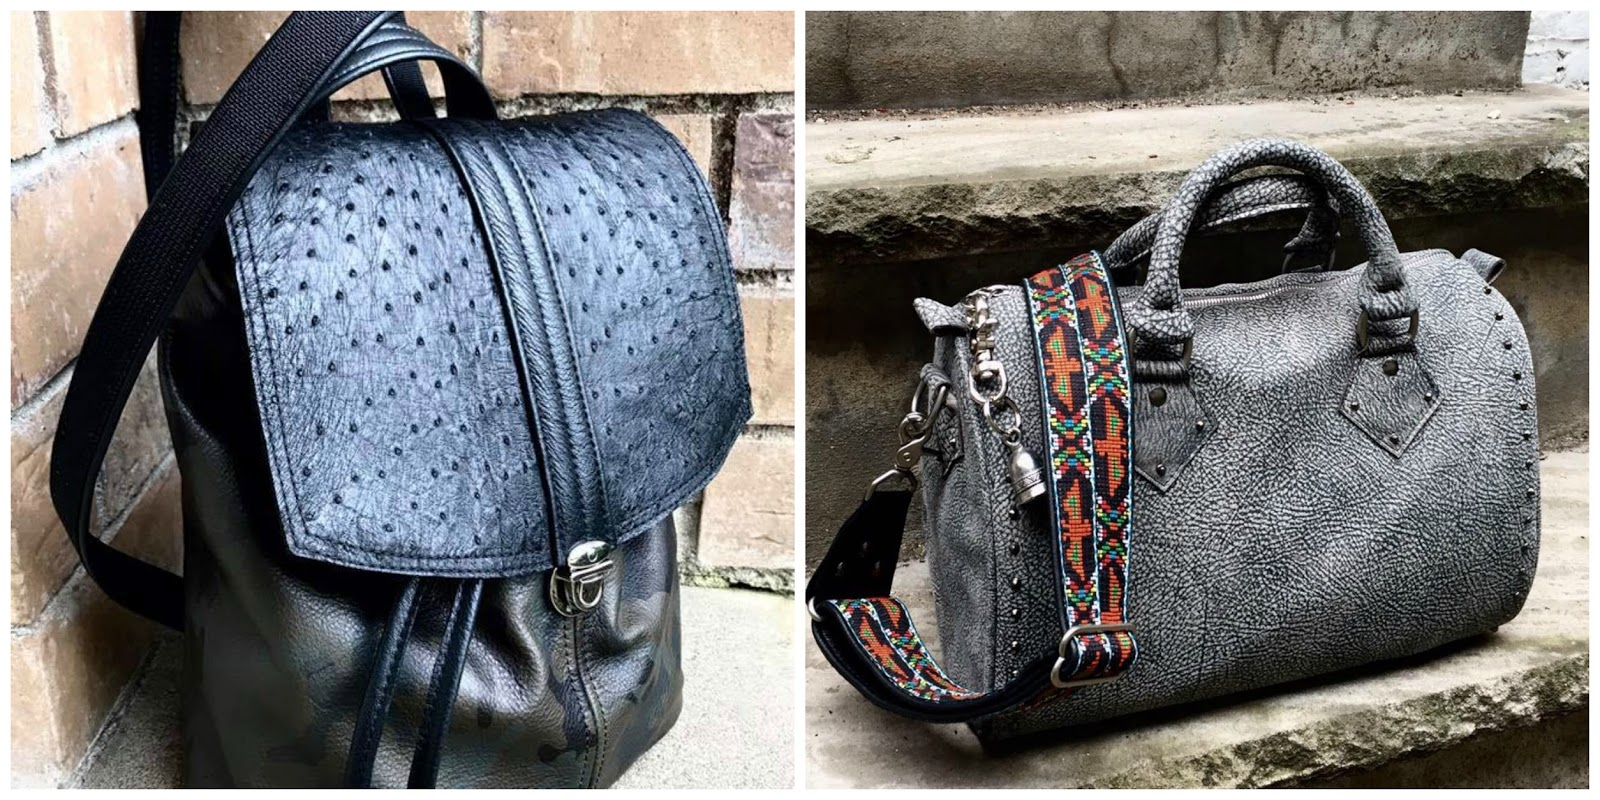 Check Out Some Of The Incredible Bags She Has Created With Gorgeous Leather From Tannery Nyc